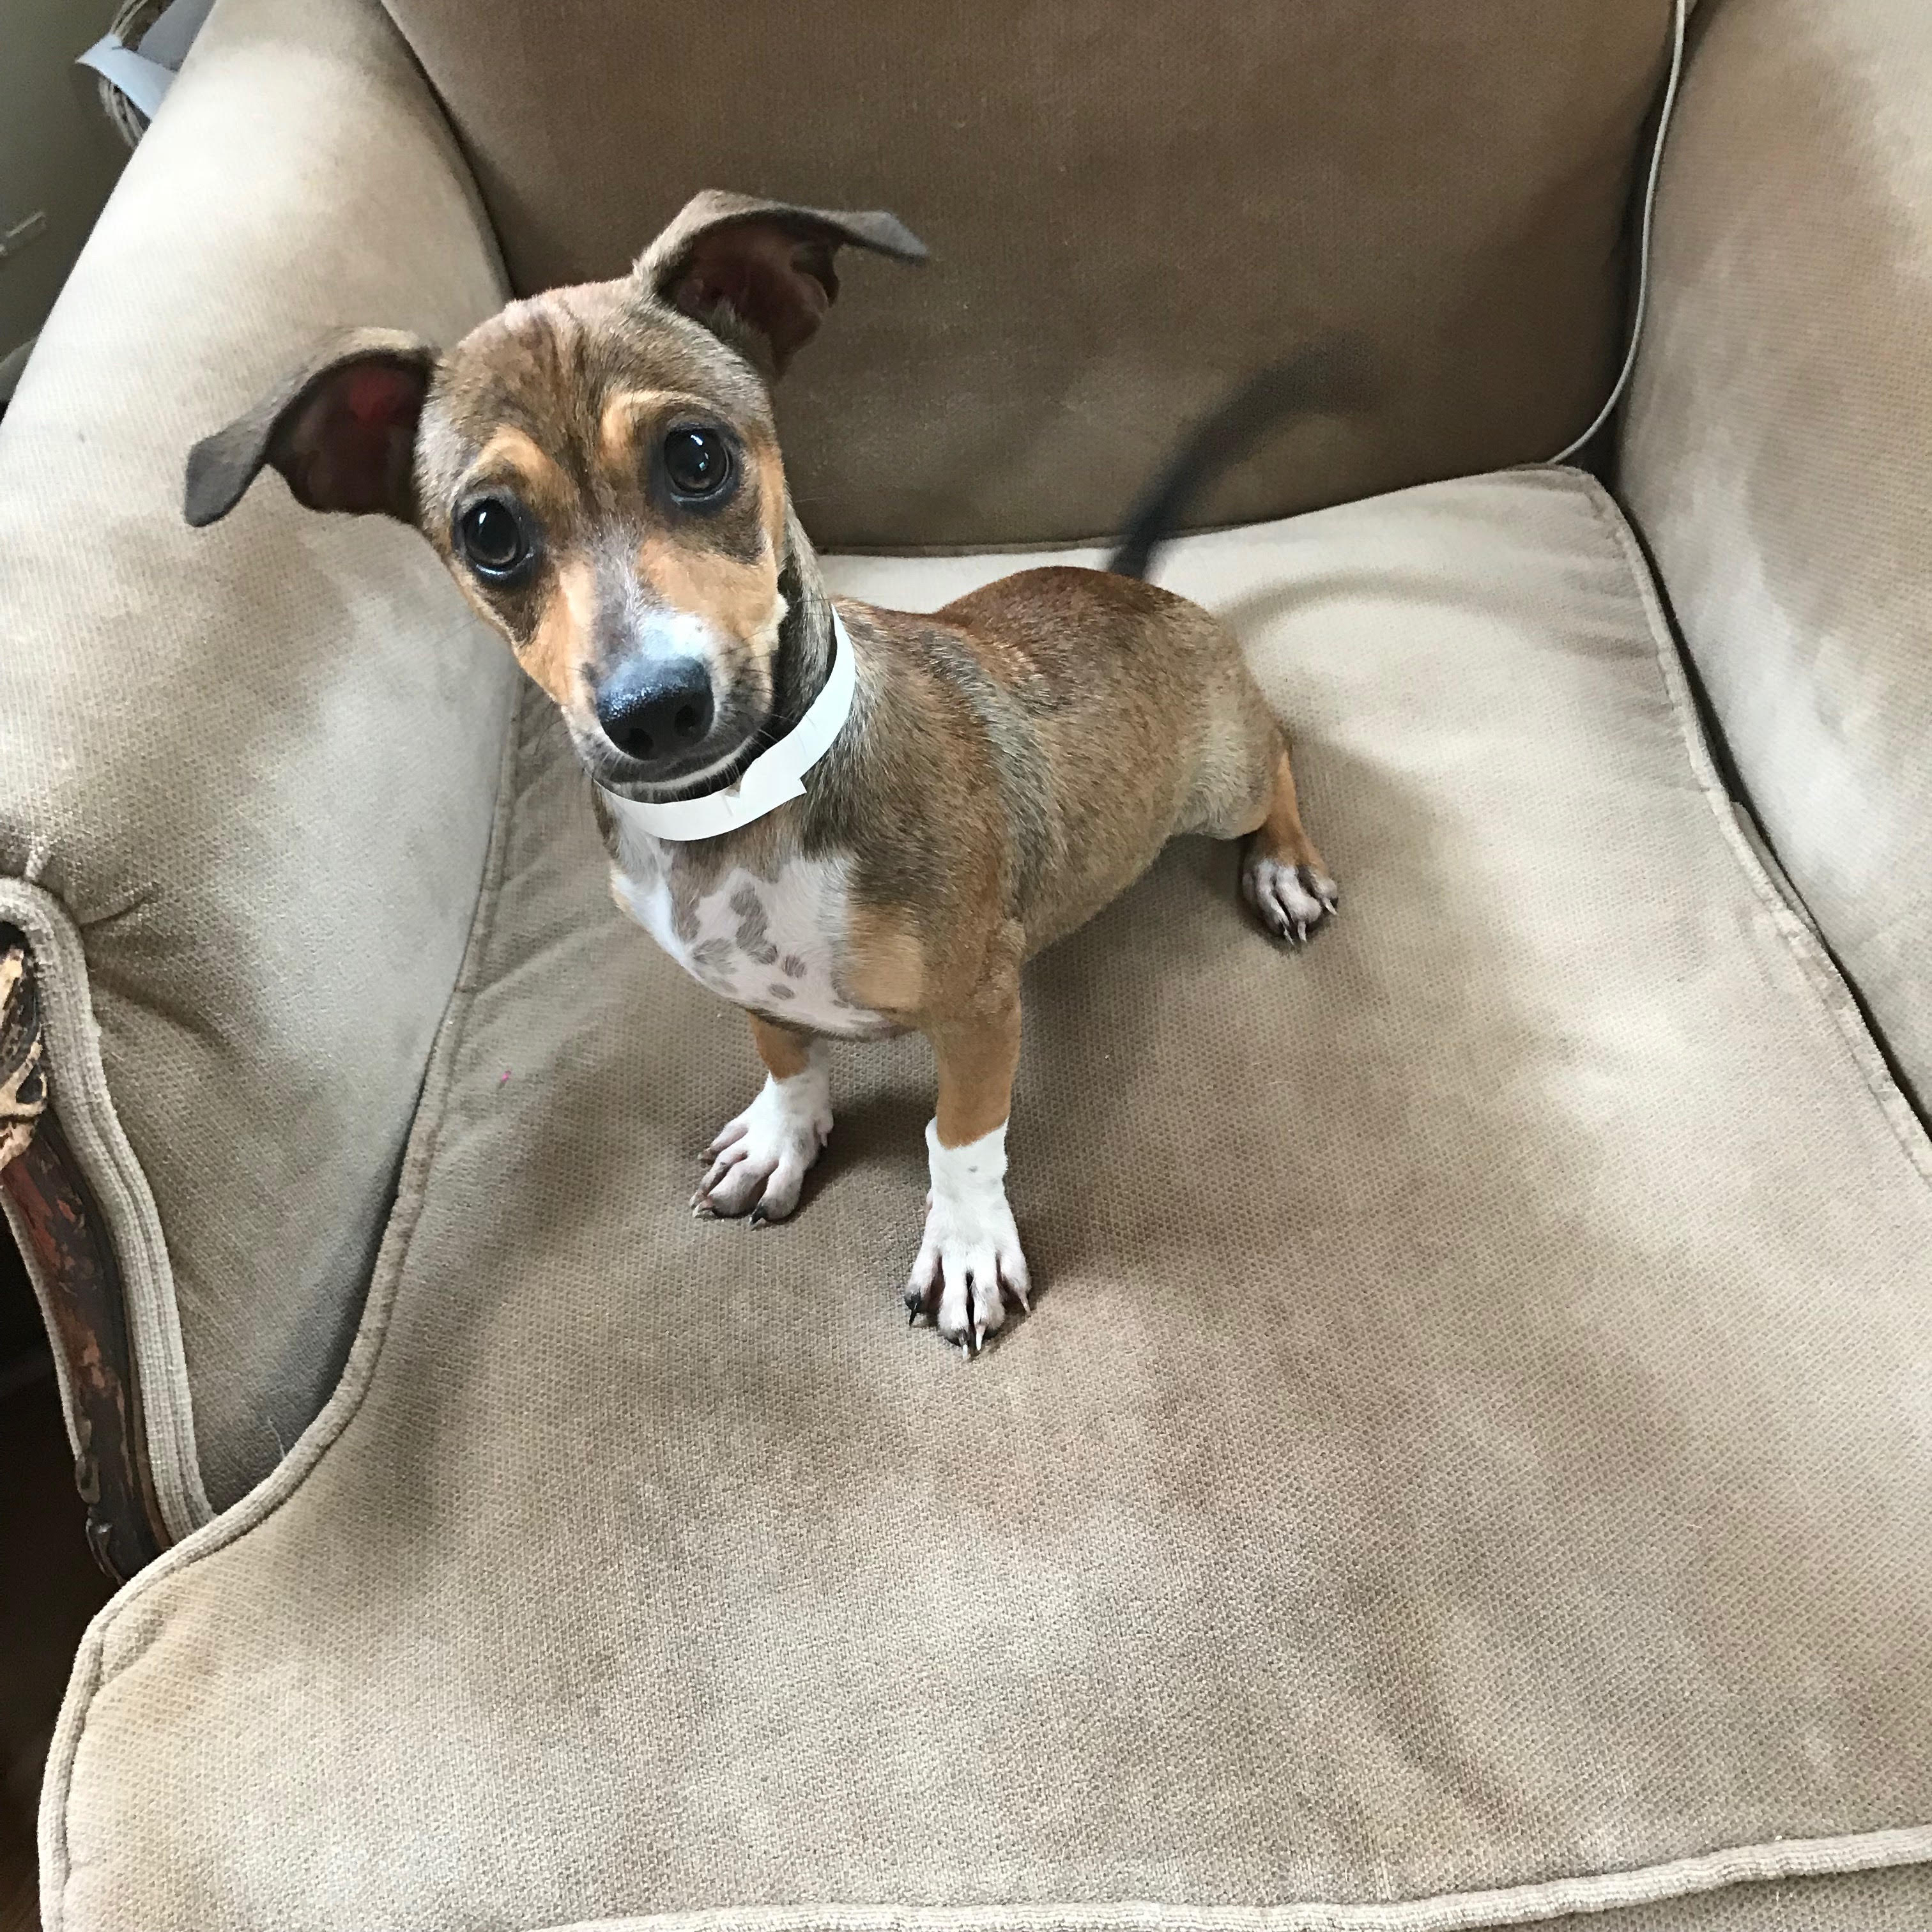 Juanita is a 10/12-week-old, 8-pound Dachshund who was evacuated before the storm from{ }Florence, South Carolina. If you are interested in adopting Juanita, you can meet her{ }Sunday (September 16) from 12-2 pm at the Kentlands PetSmart in Gaithersburg, MD. (Image: Courtesy Lucky Dog Animal Rescue){ }